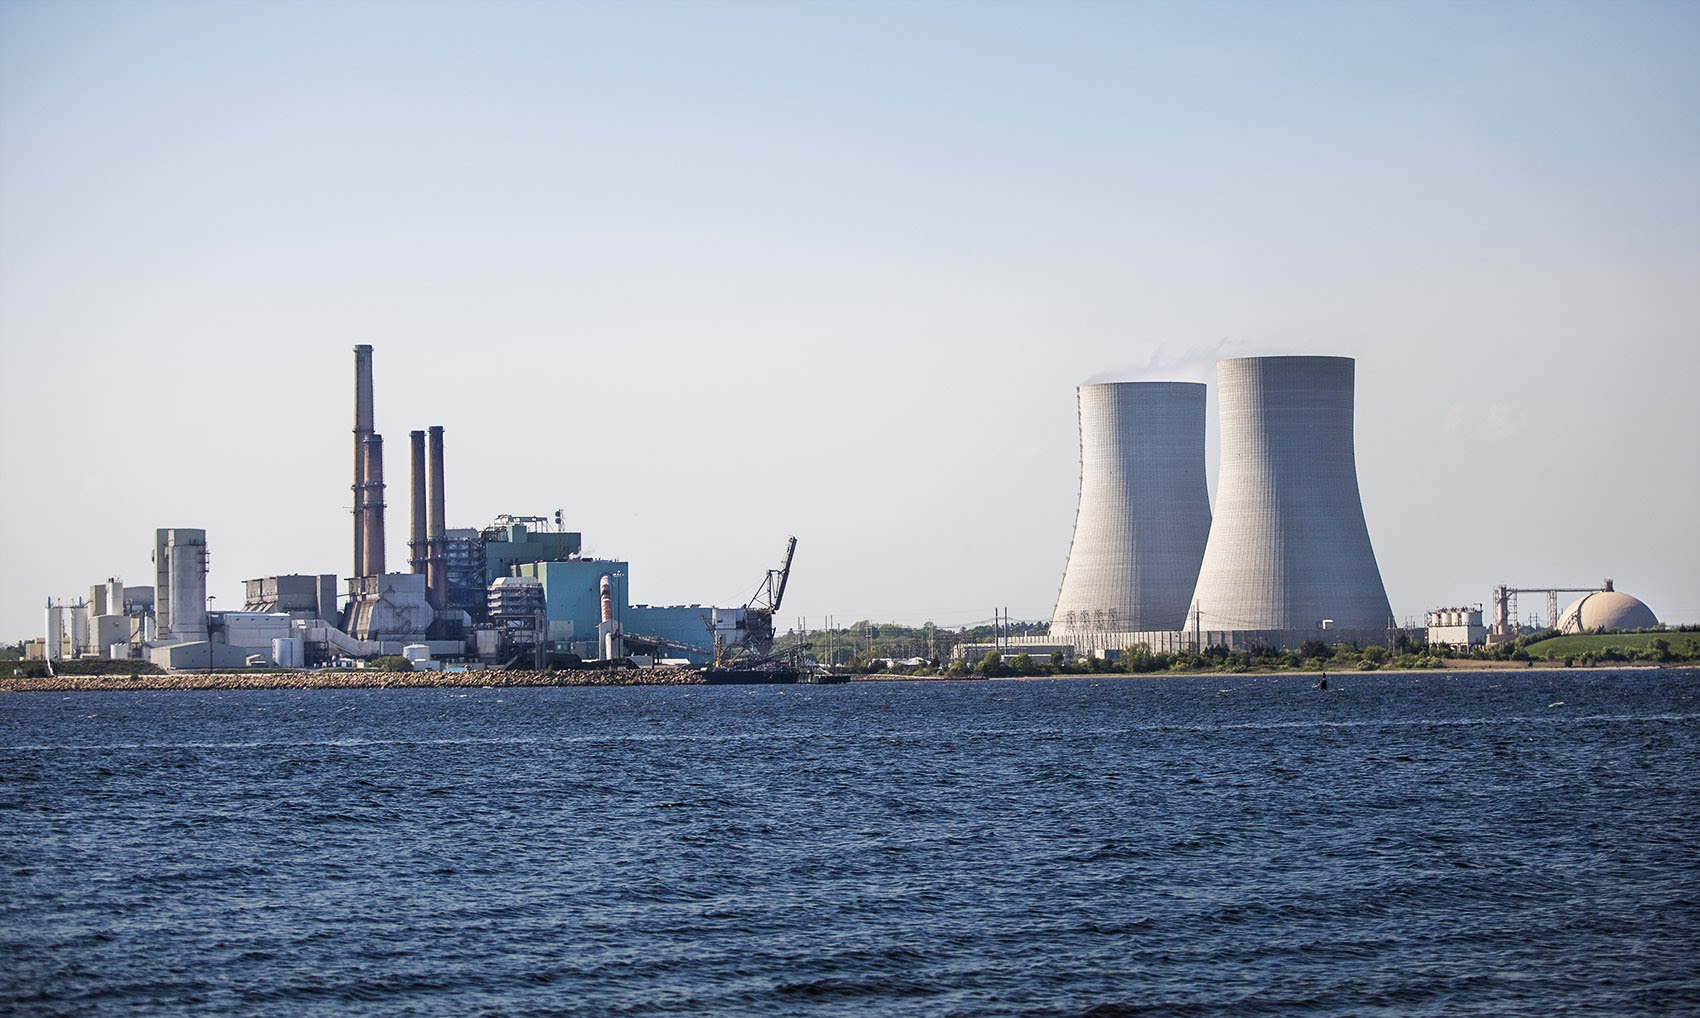 The coal-burning Brayton Point Power Station in Somerset, Mass. from across the Taunton River. (Jesse Costa/WBUR)